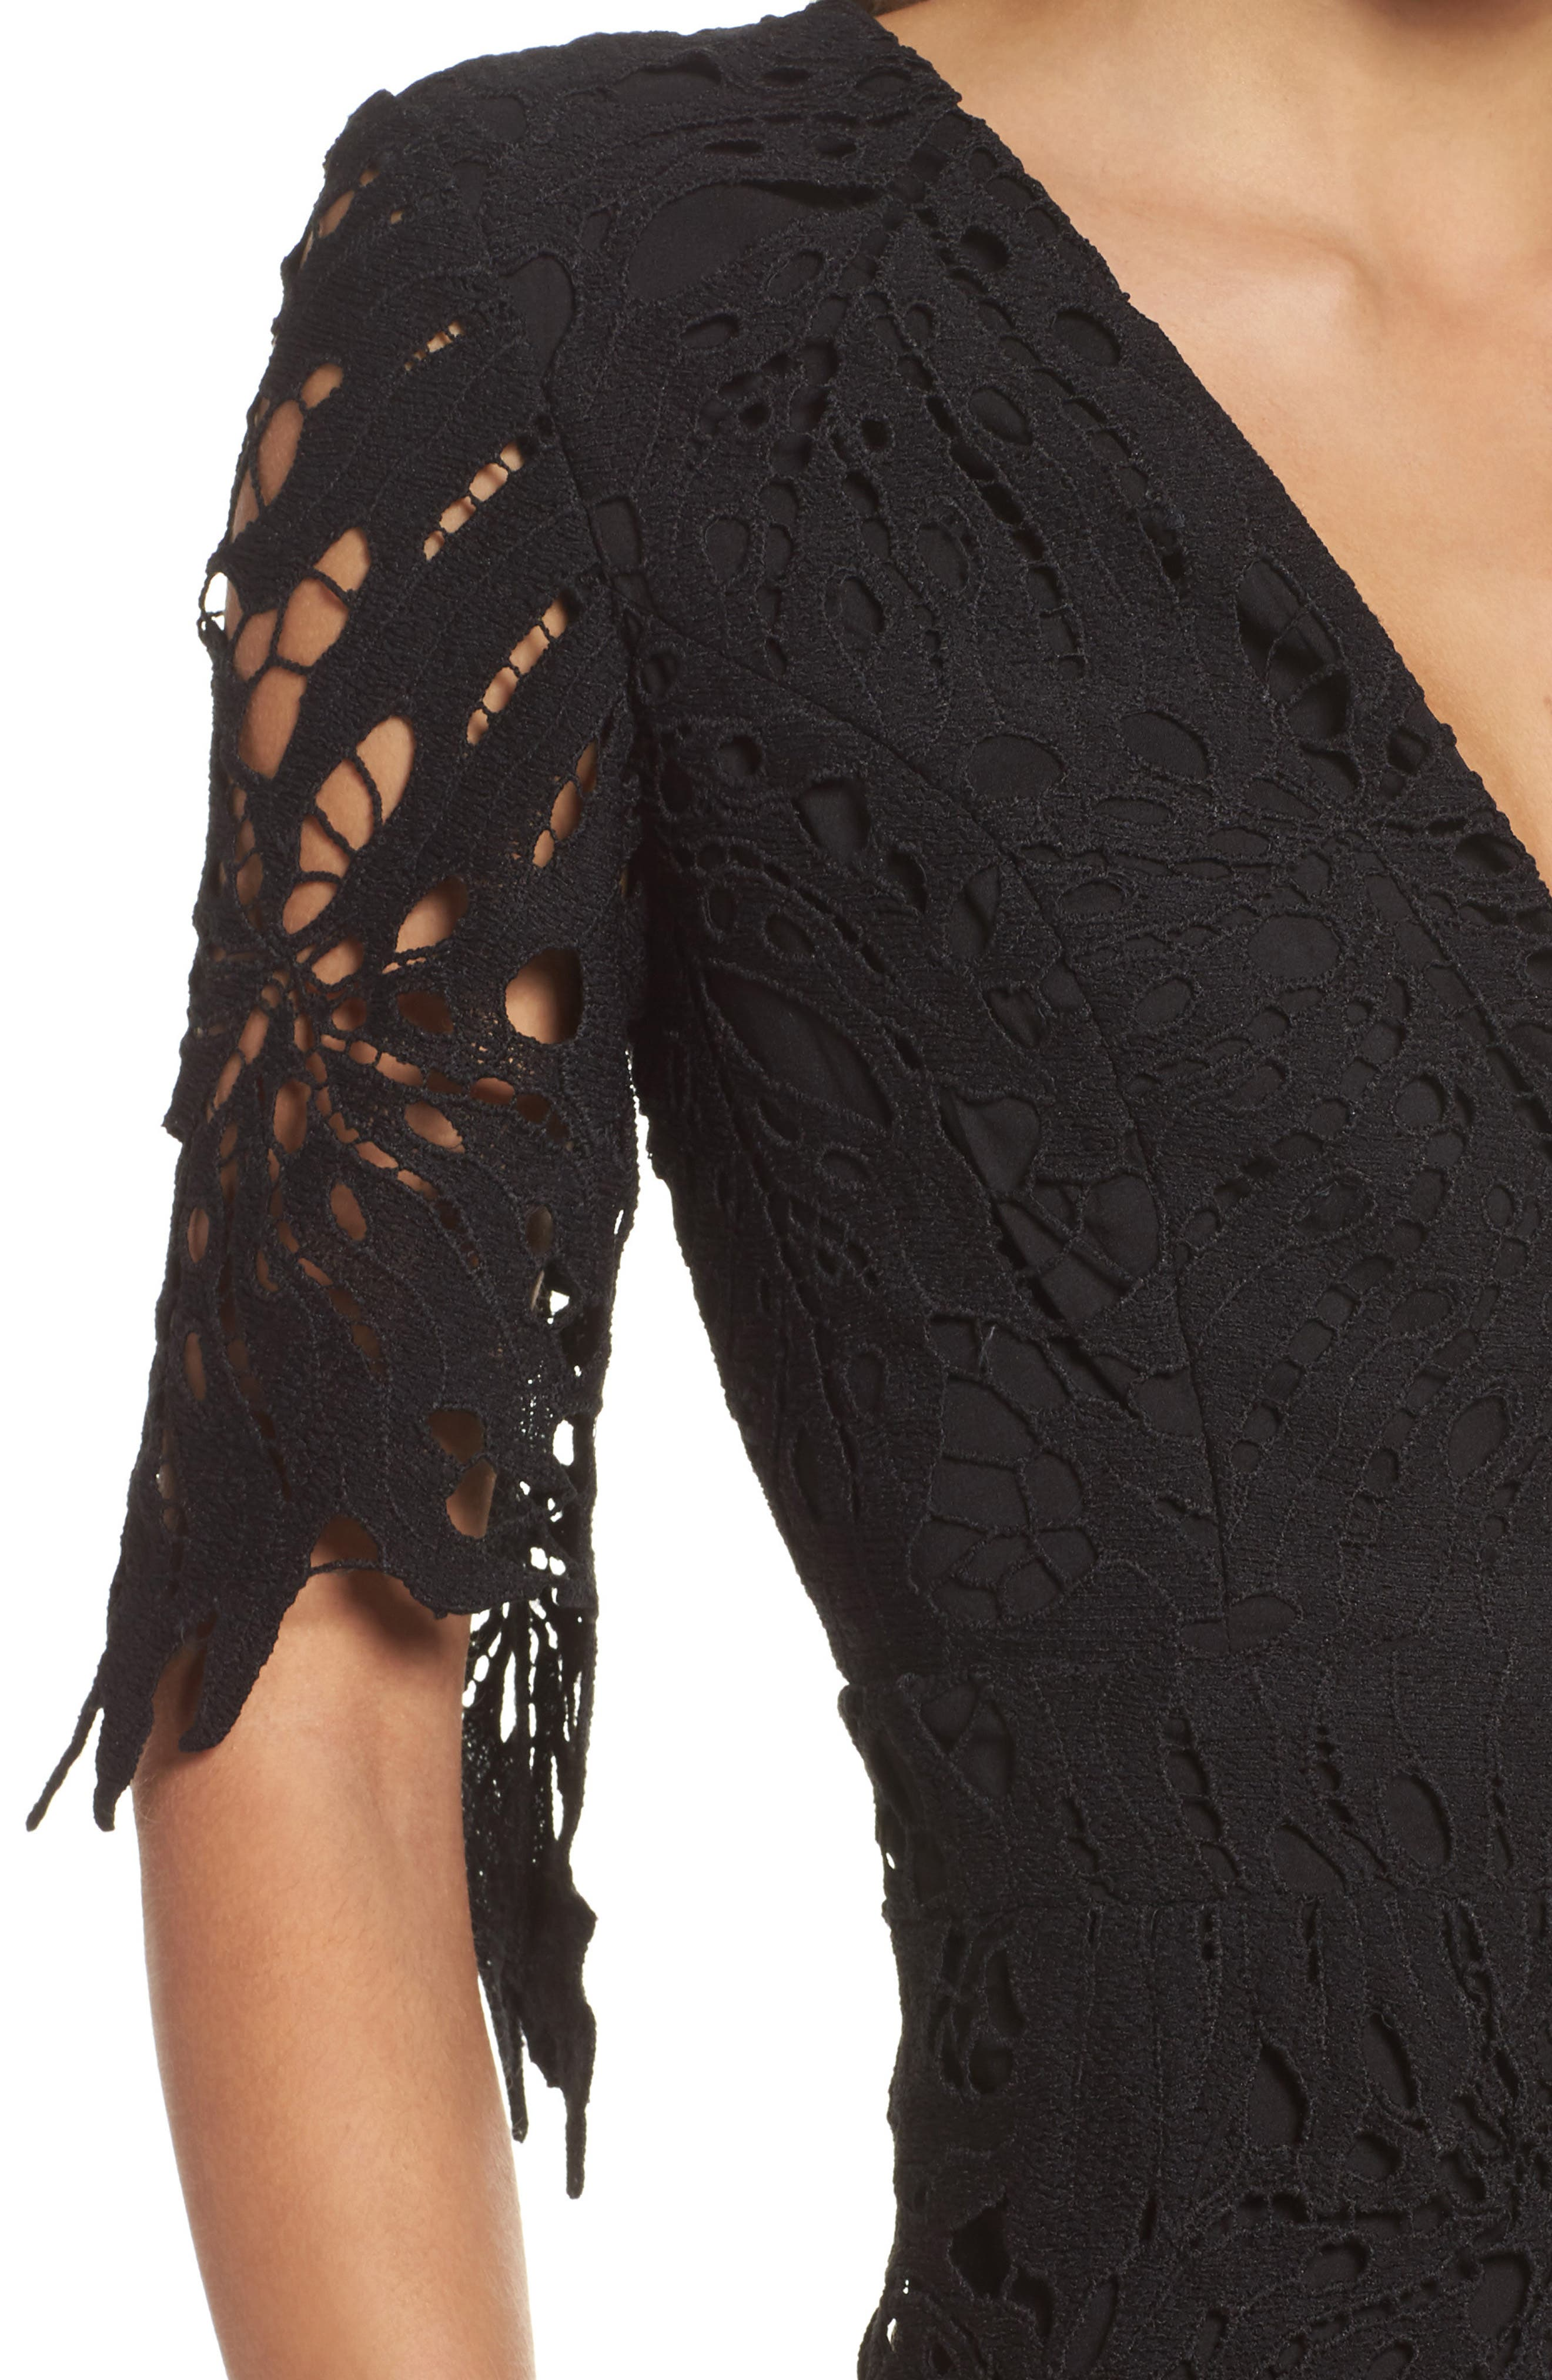 Amalfi Lace Romper,                             Alternate thumbnail 4, color,                             001